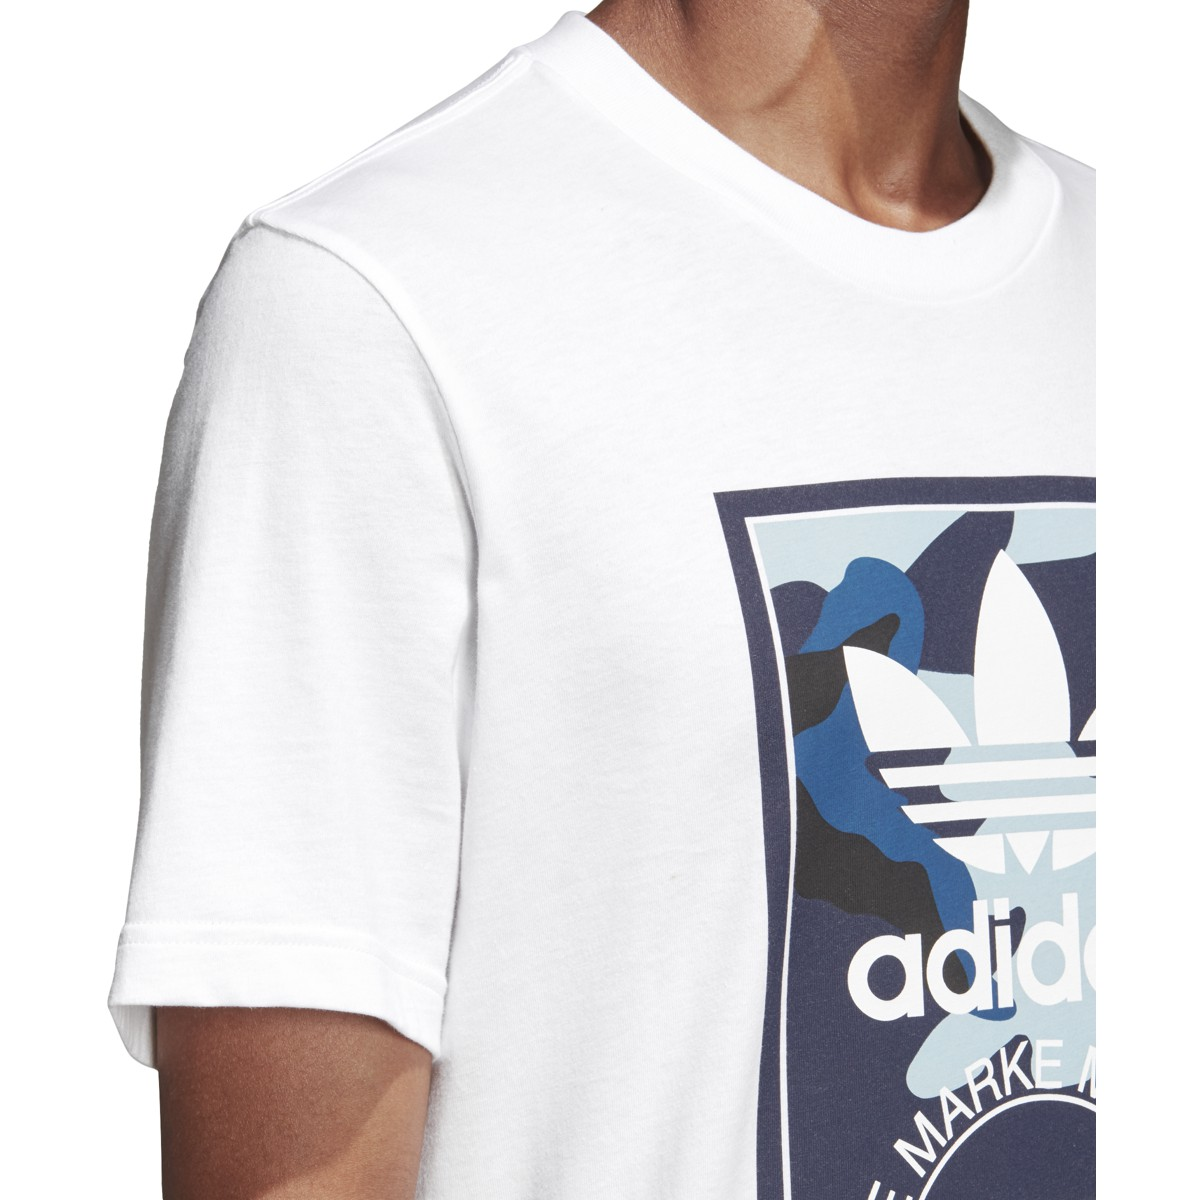 3c038993a Adidas Men's Originals Camouflage Tongue Label Tee White DX3662 | eBay